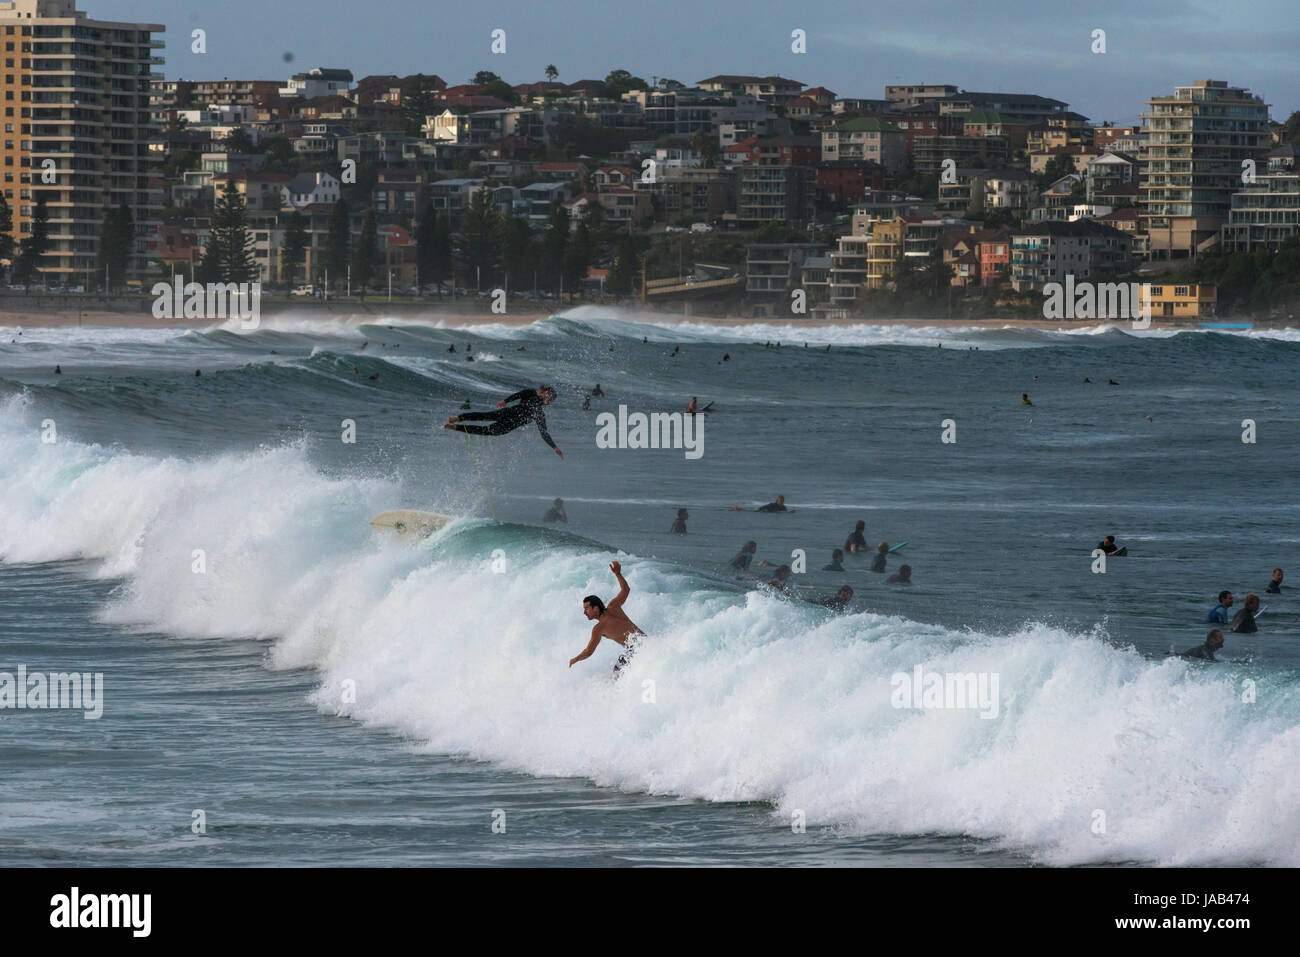 Dramatic scene with surfer flying high in the air at Manly beach, Sydney, New South Wales, Australia Stock Photo